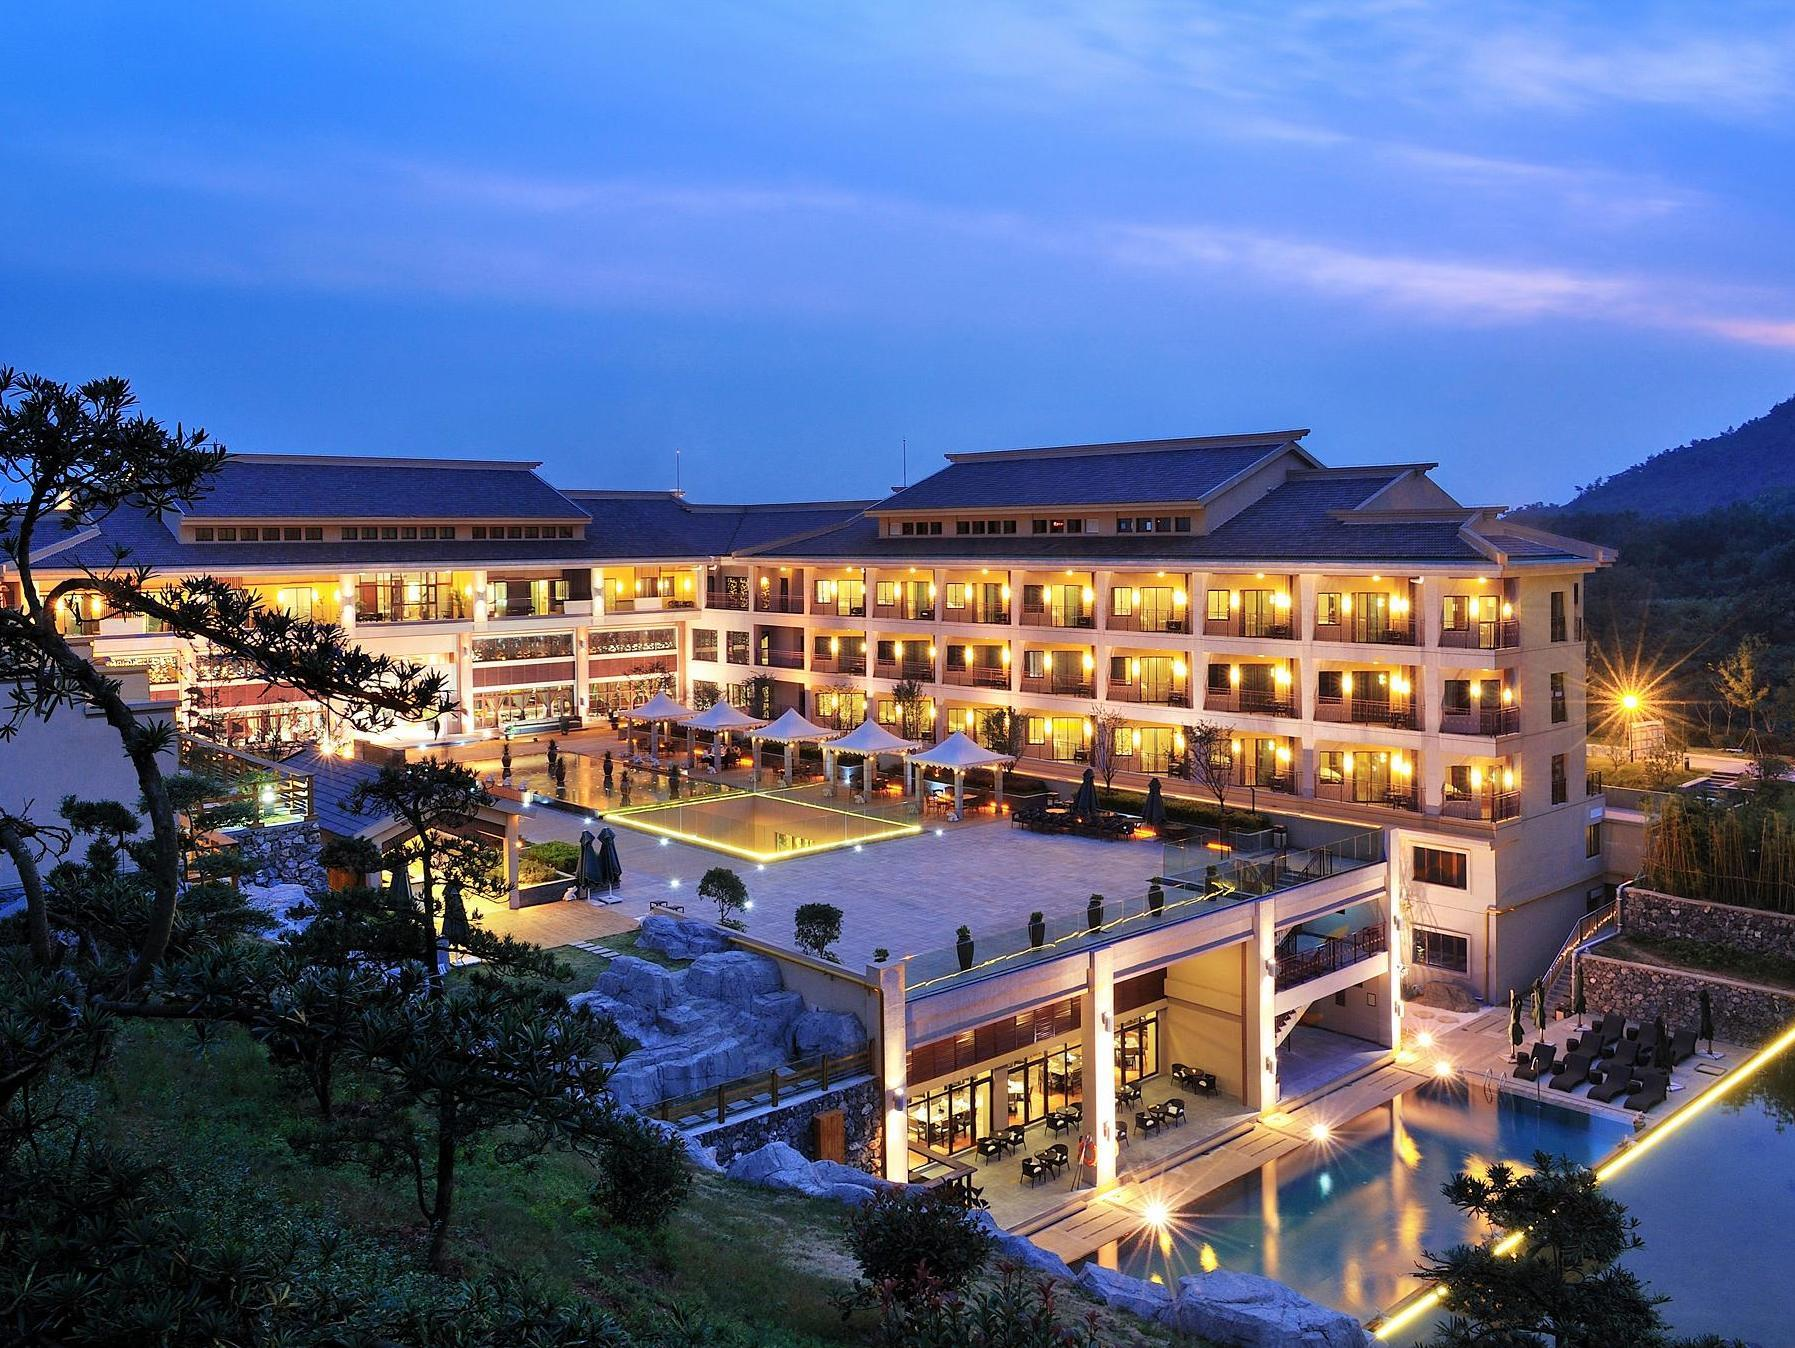 Regalia Resort & Spa Nanjing Tangshan - Nanjing